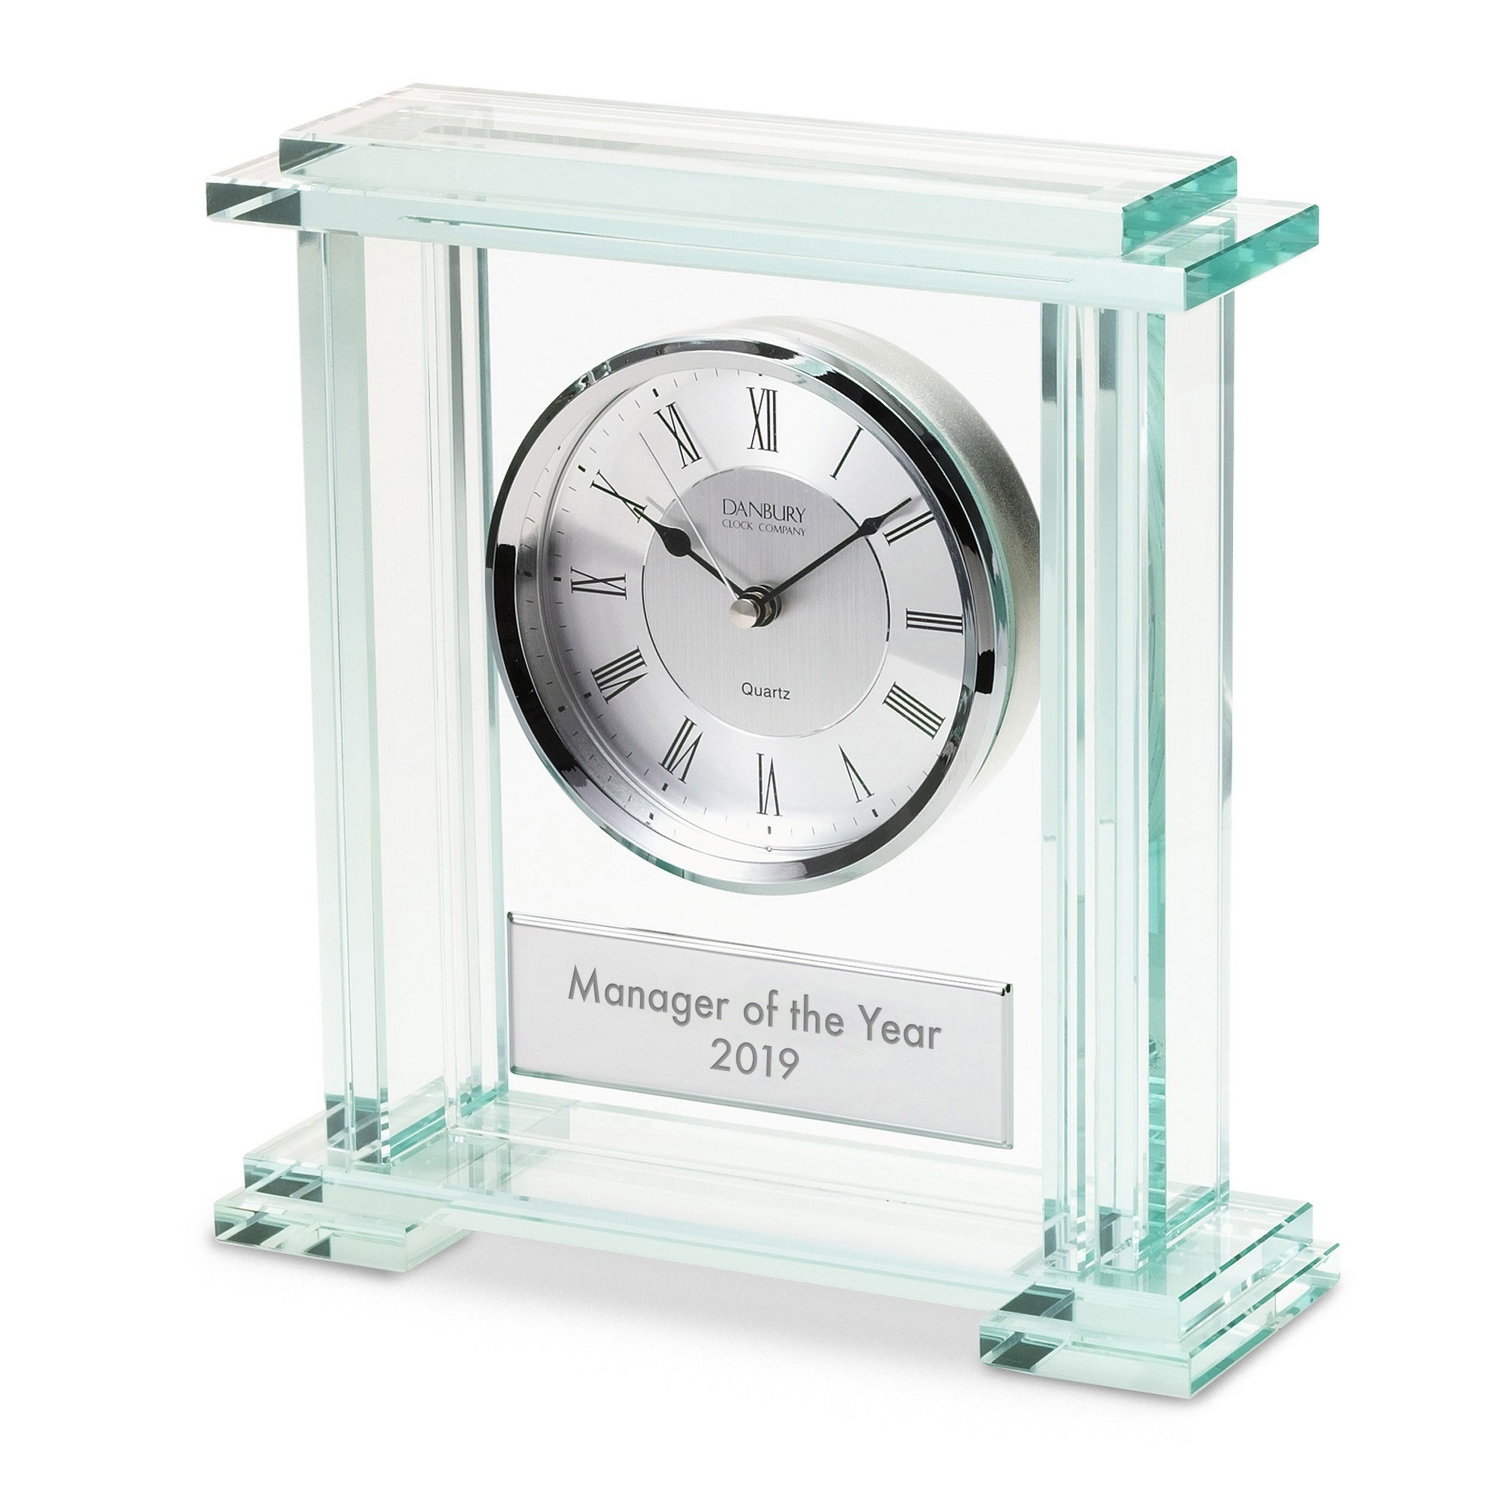 Personalized business clocks at things remembered glass block clock jeuxipadfo Images